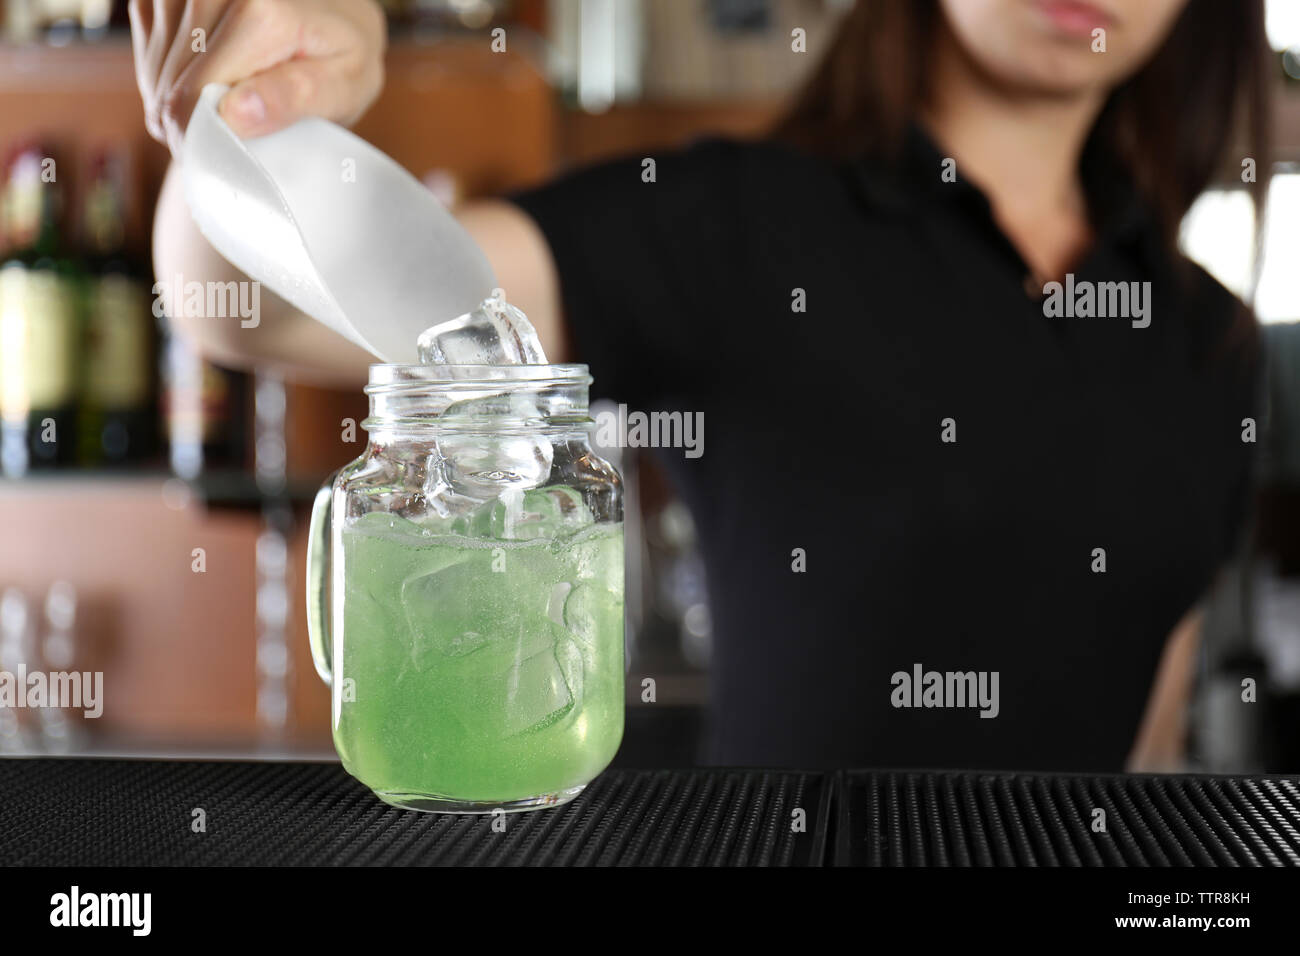 Woman hands adding ice into cocktail on bar counter Stock Photo